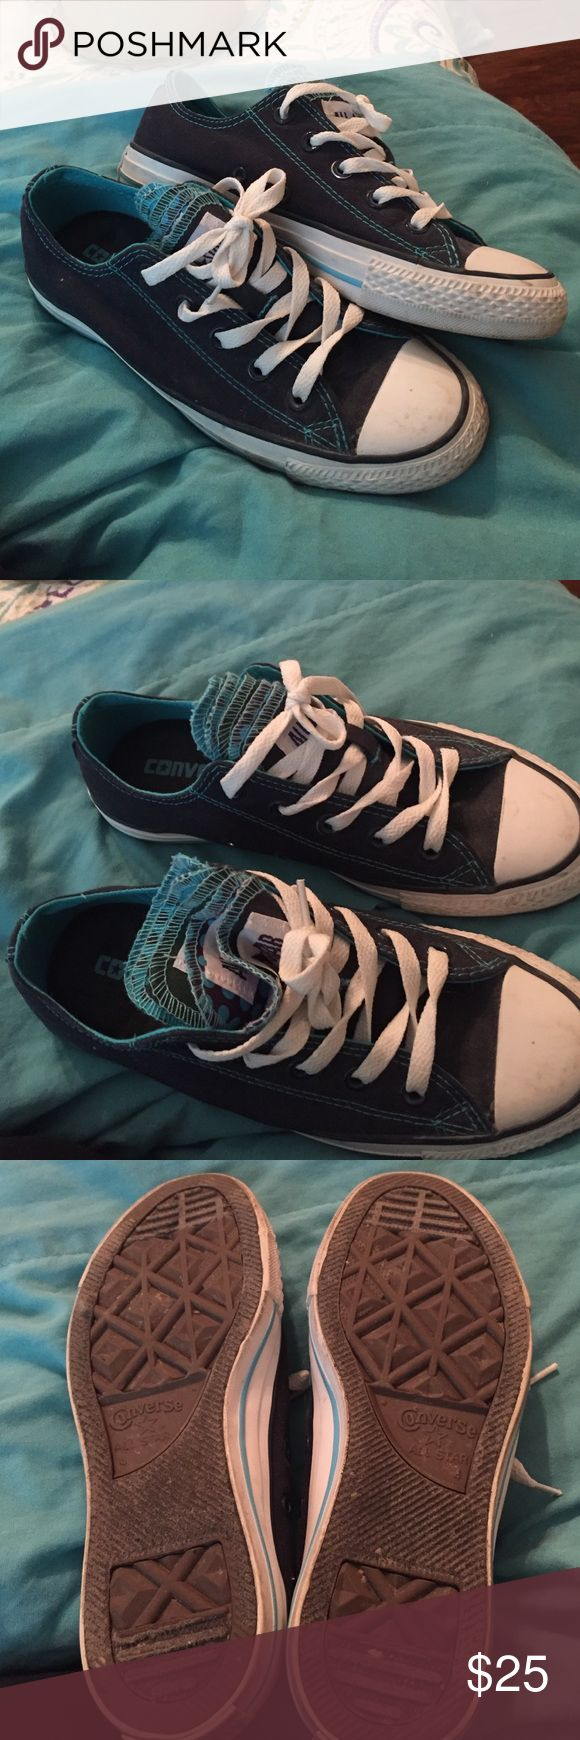 Ladies Converse Worn a few times, great condition Converse Shoes Sneakers